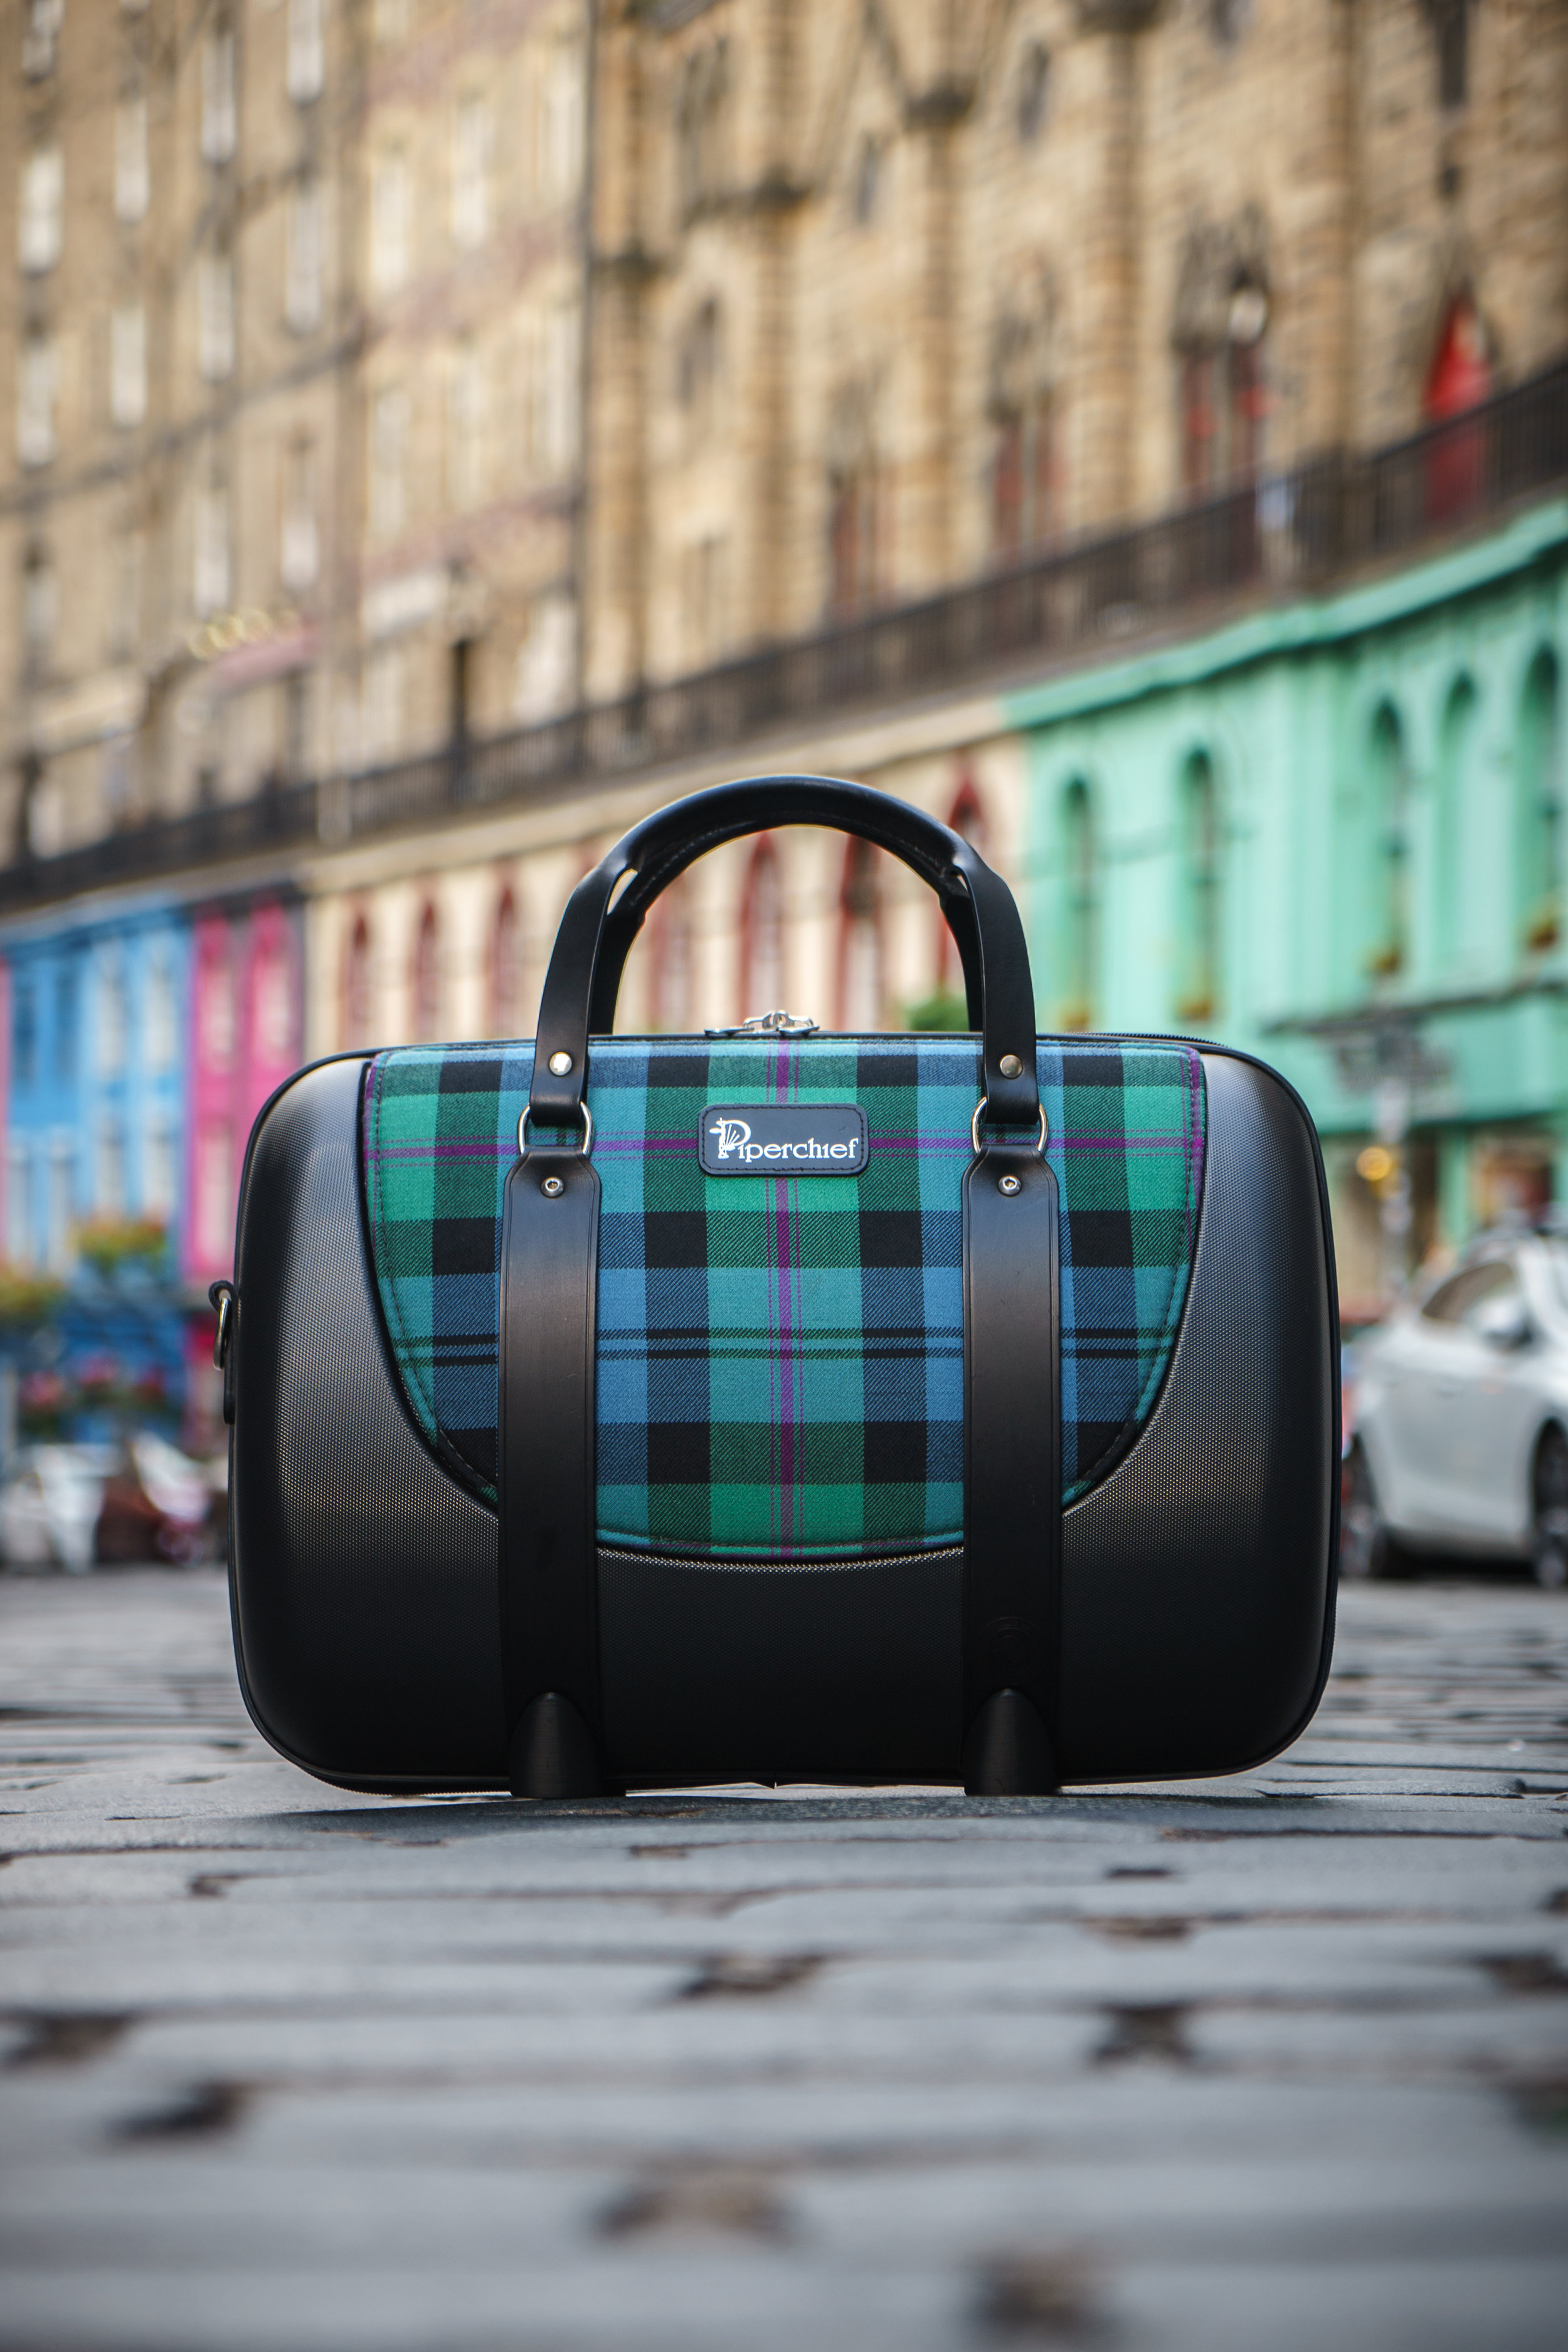 The First Piper - Piperchief has been out travelling the world with The First Piper - Ross OC Jennings